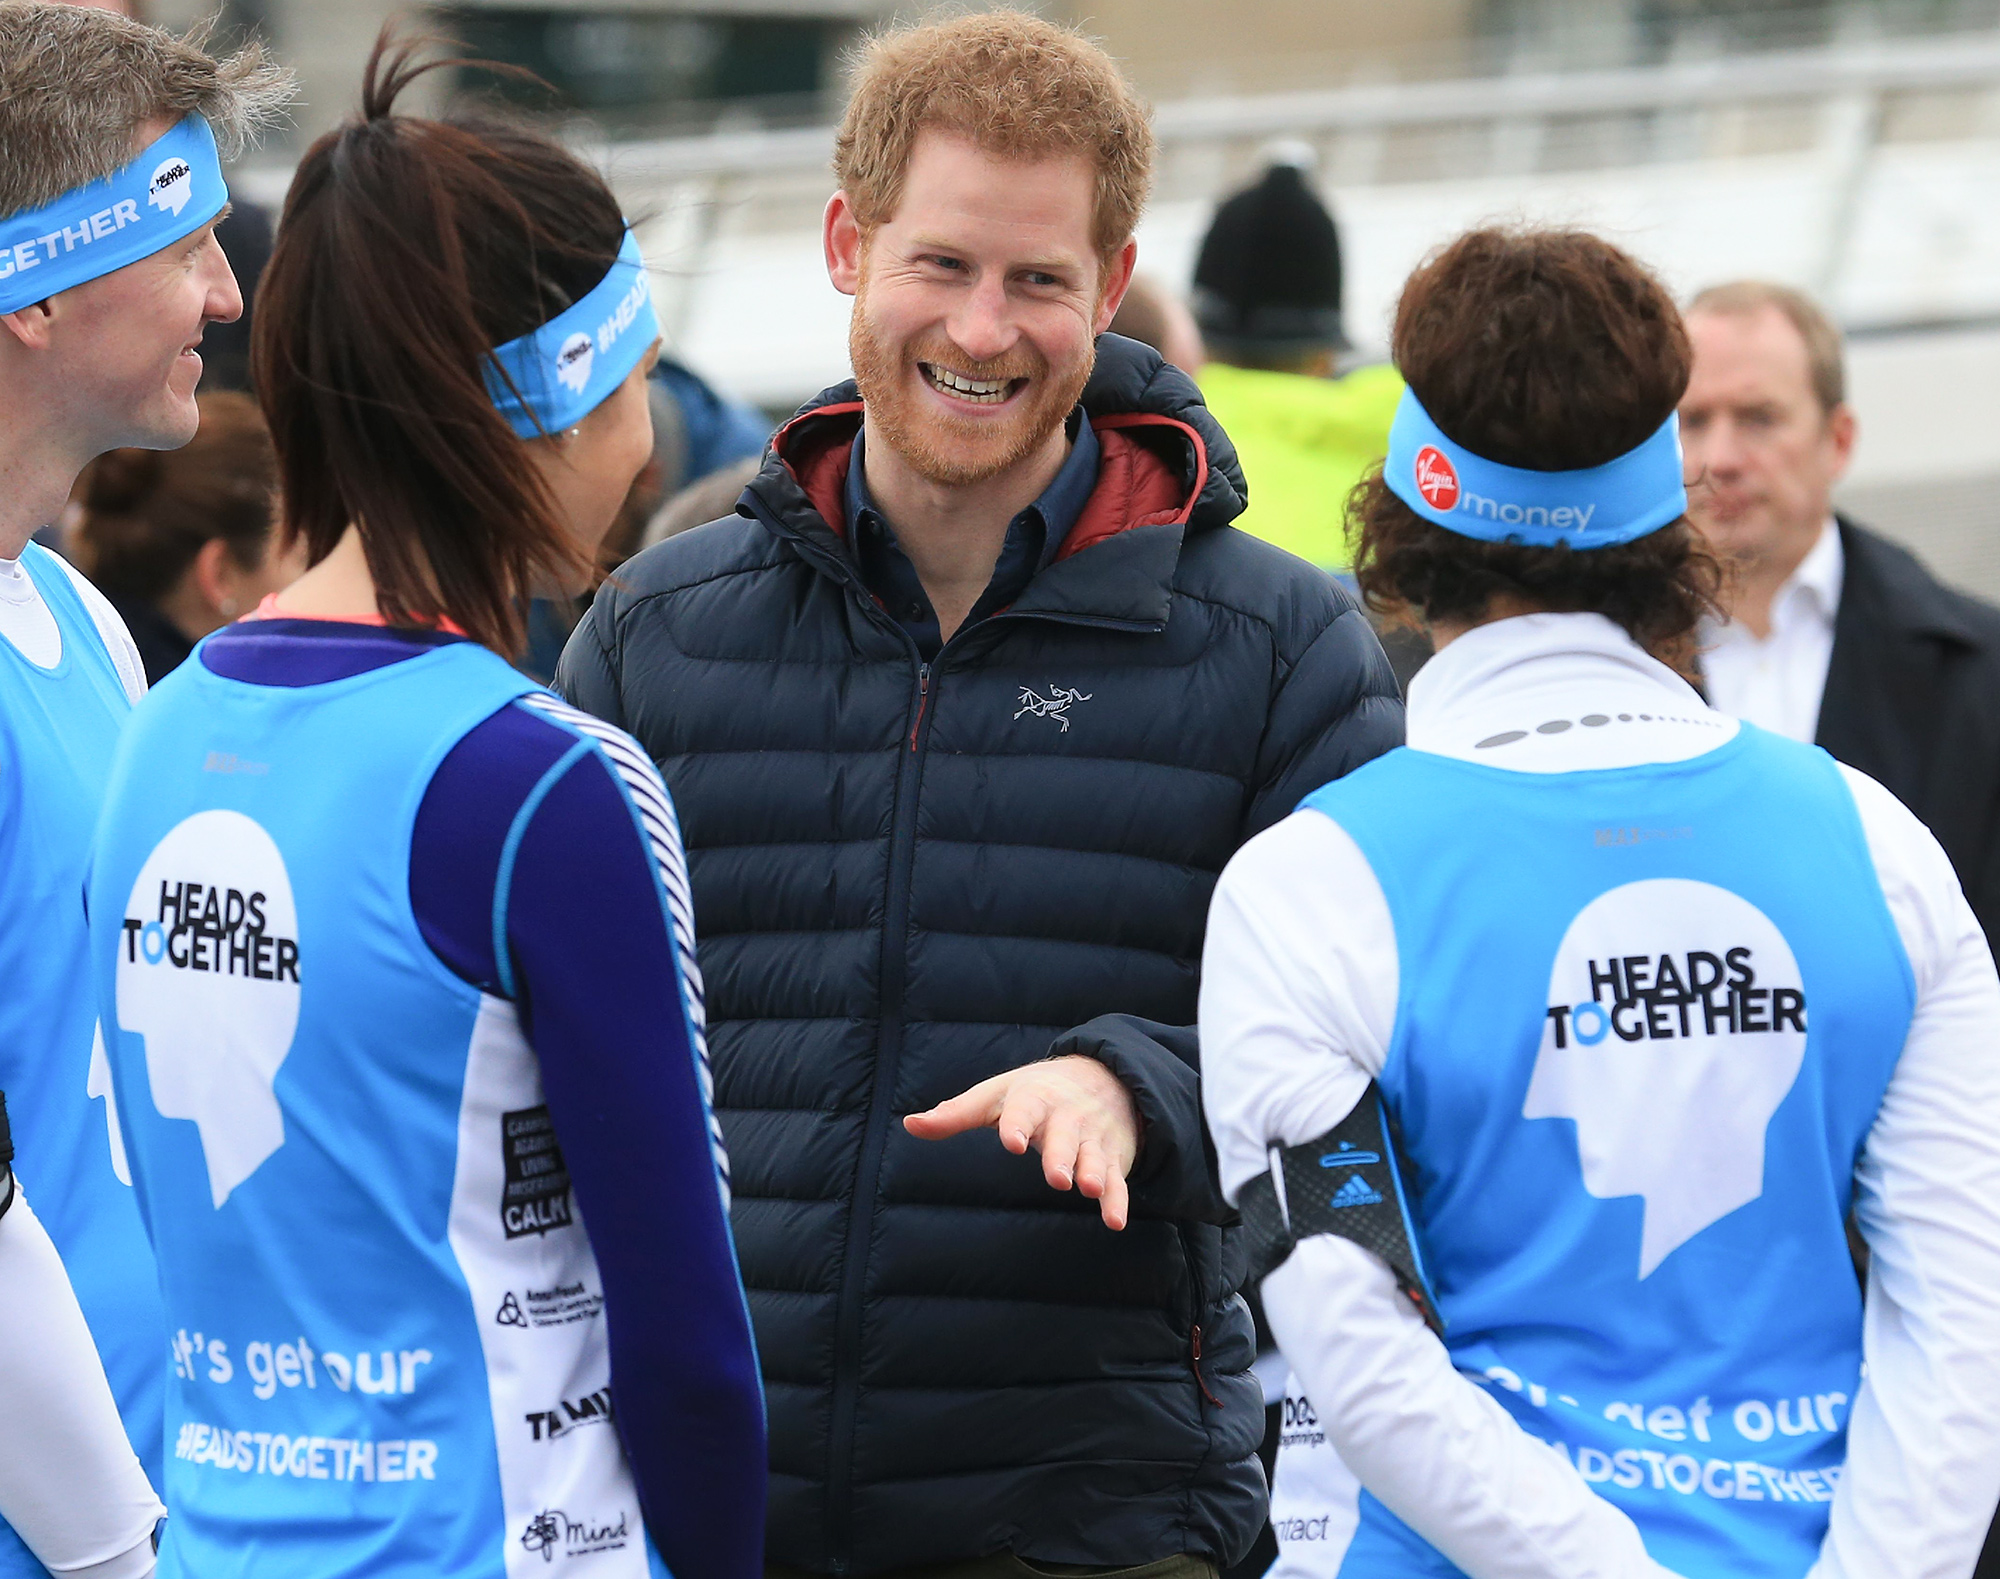 Prince Harry visits Newcastle and Gateshead, UK - 21 Feb 2017